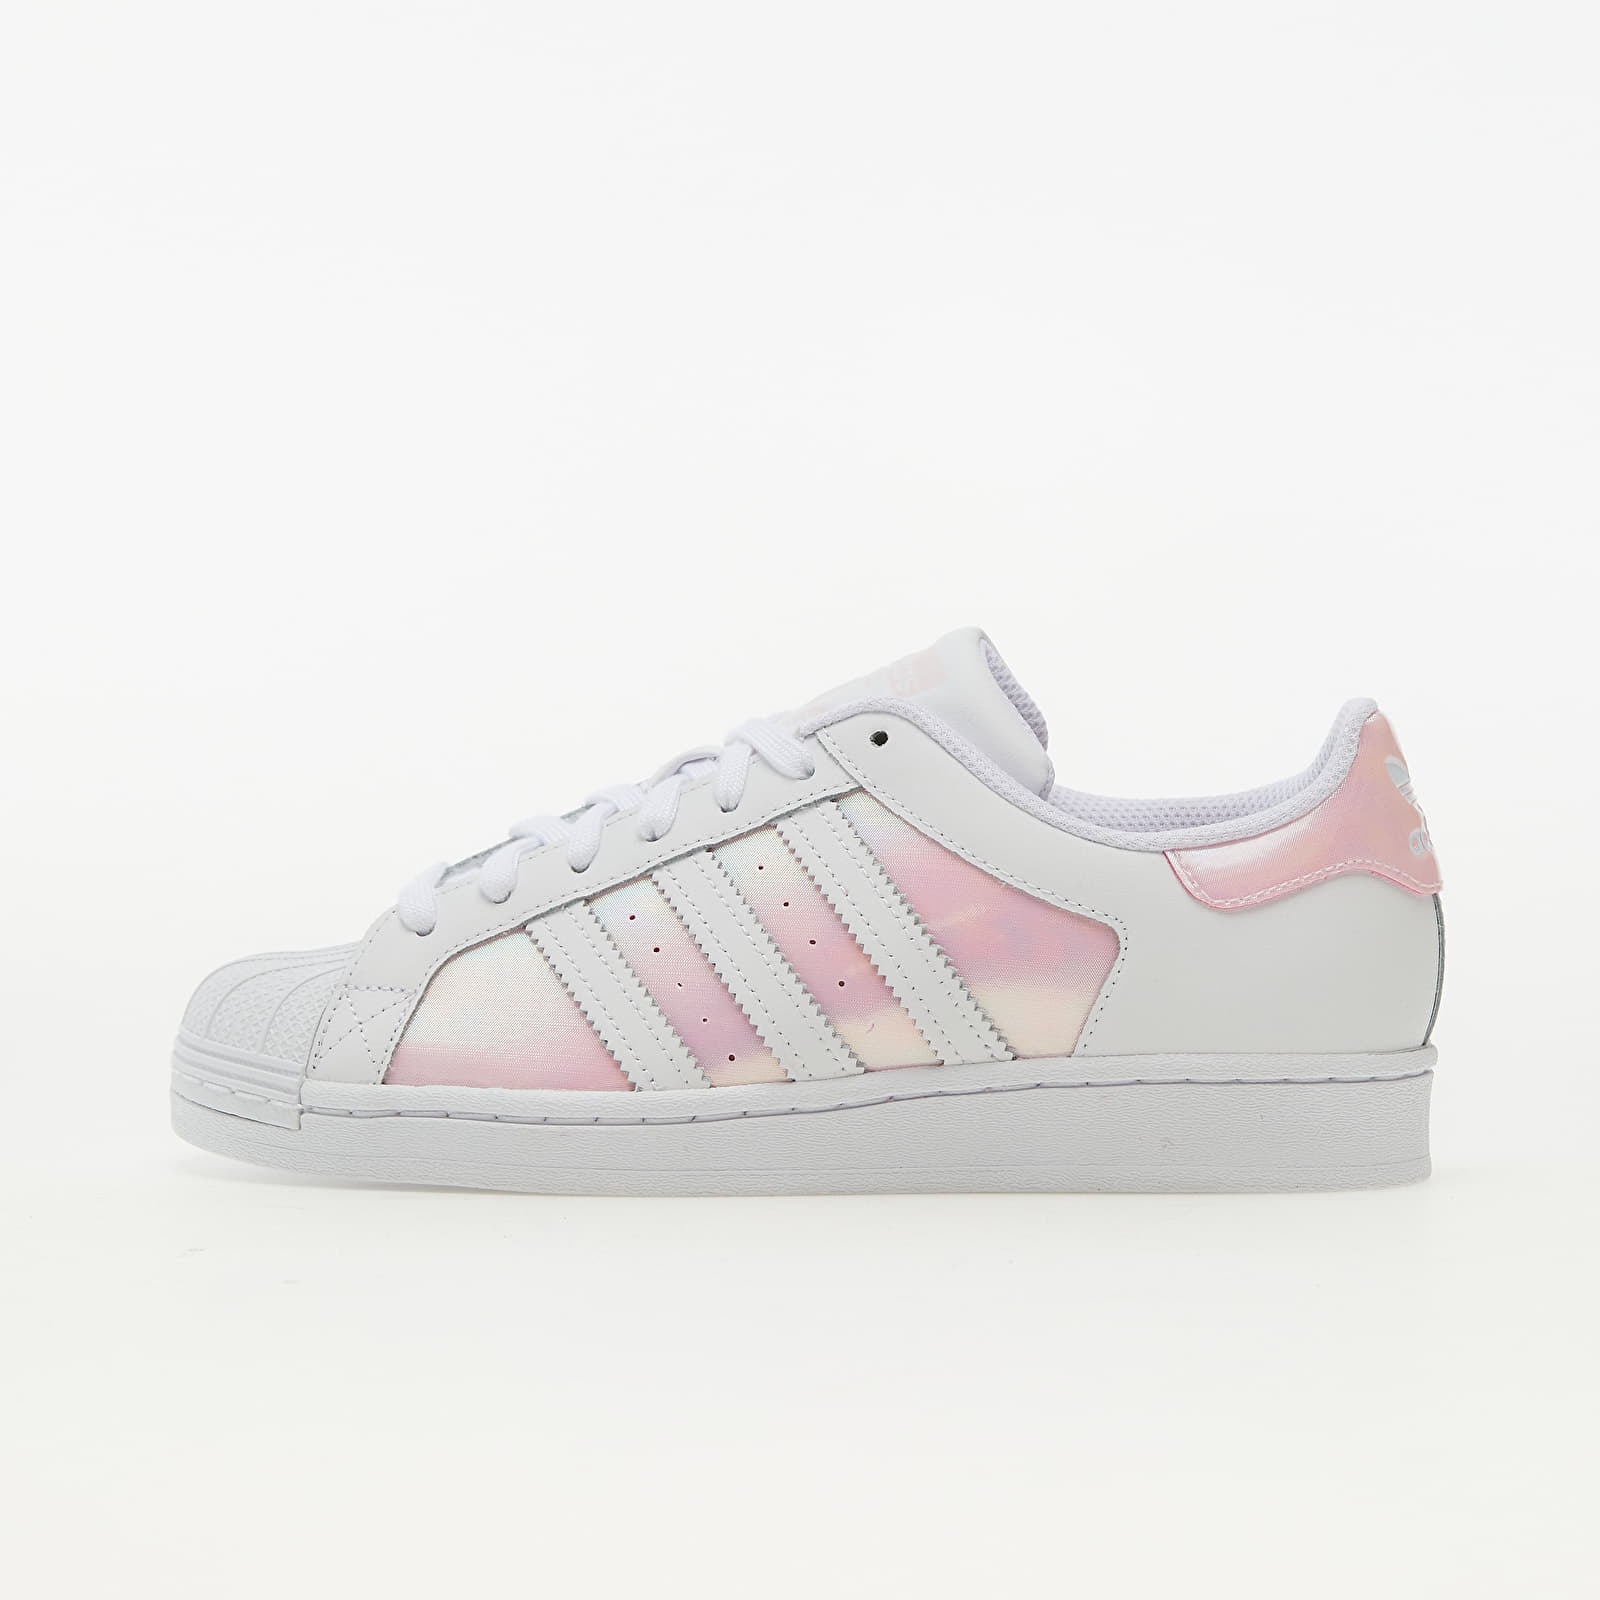 adidas Superstar W Ftw White/ Ftw White/ Clear Pink EUR 39 1/3